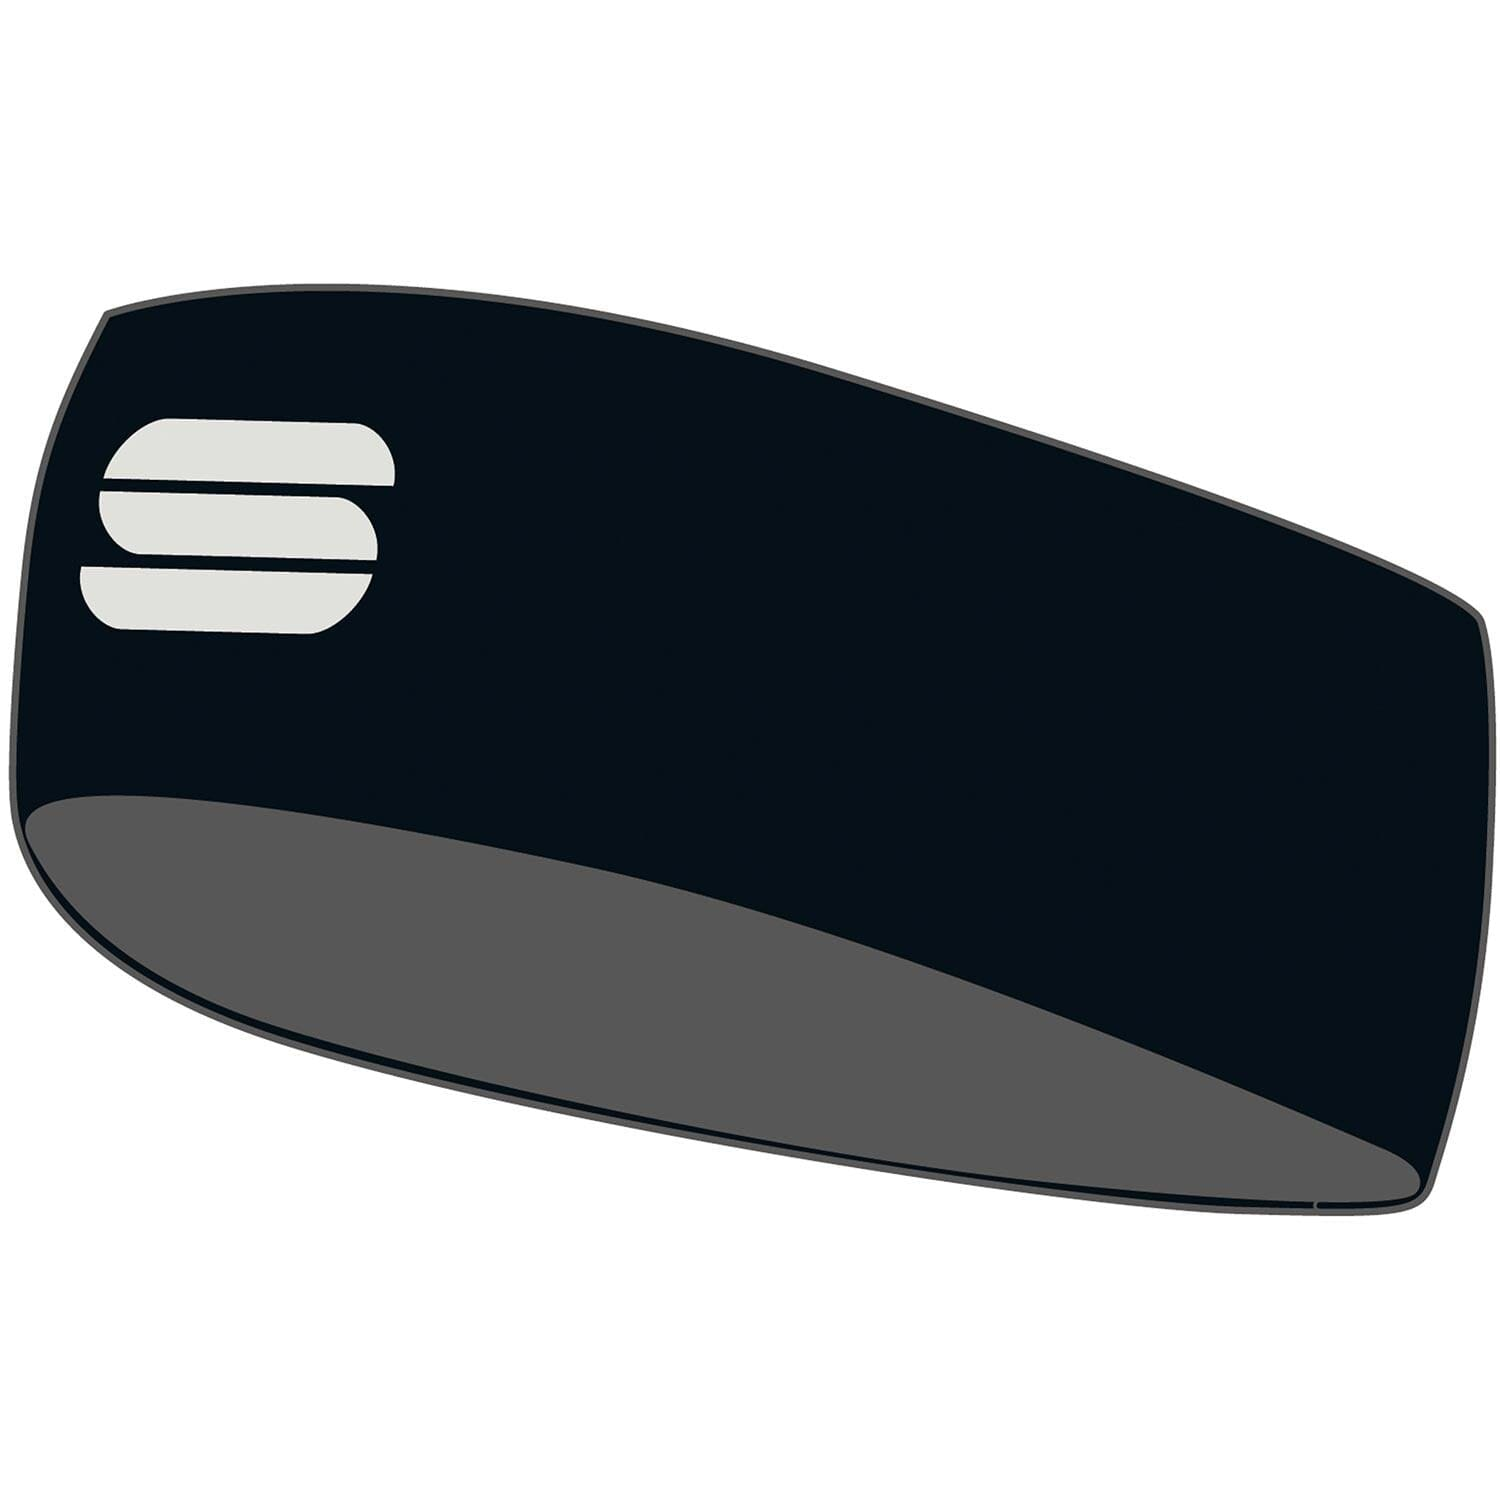 Sportful-Sportful Matchy Headband-Black-UNI-SF210830028-saddleback-elite-performance-cycling